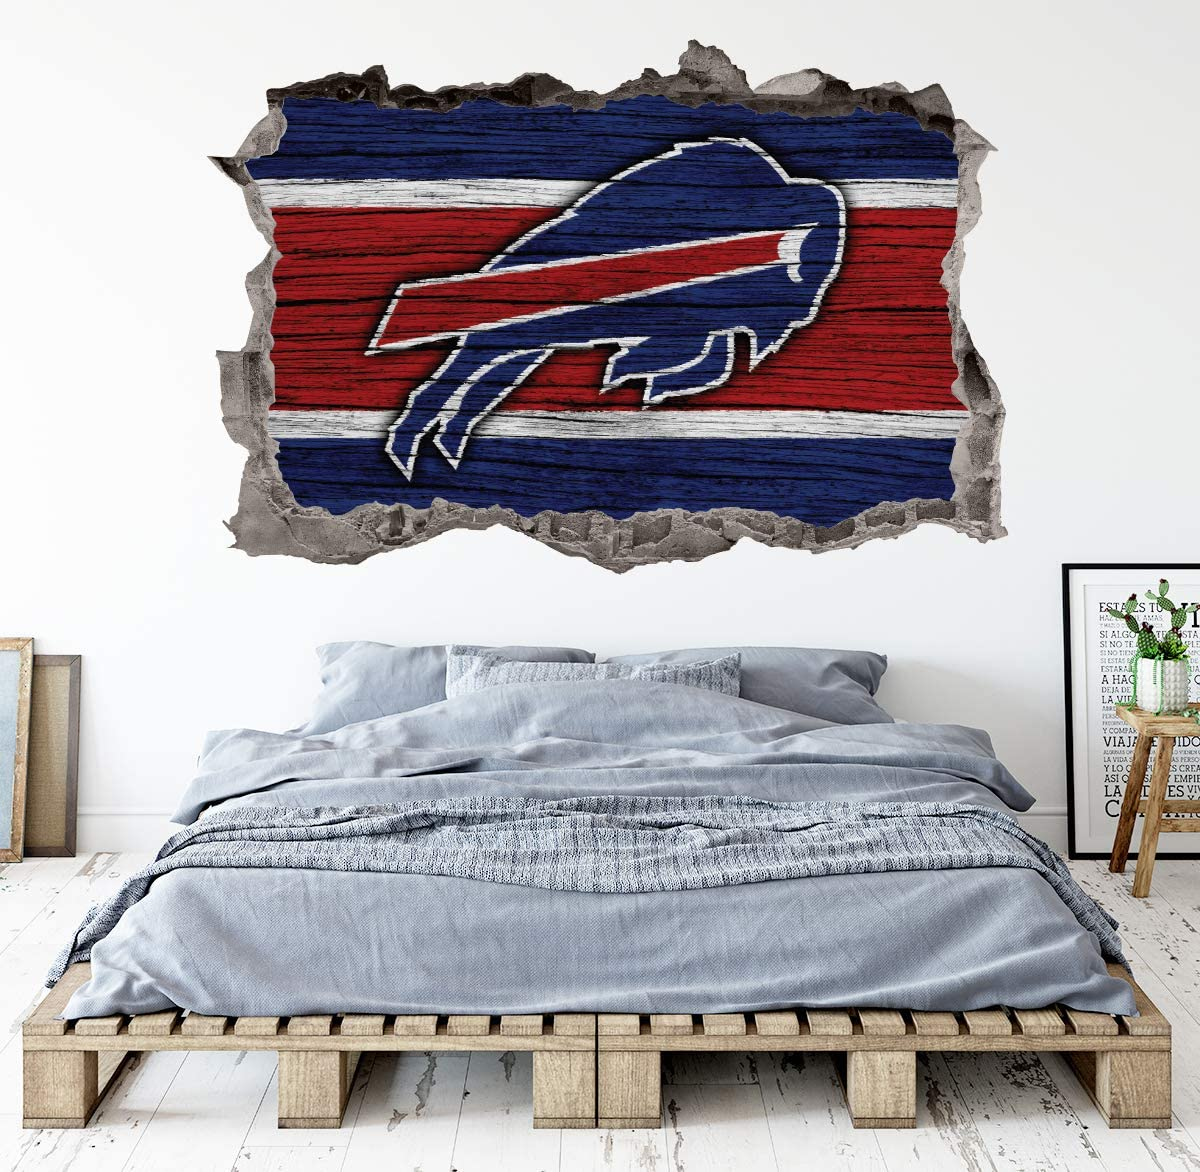 Football Buffalo Team Wall Decals Art 3D Smashed Custom Fan Bills Wall Decor Bedroom Garage Removable Vinyl Wall Stickers Gift WL176